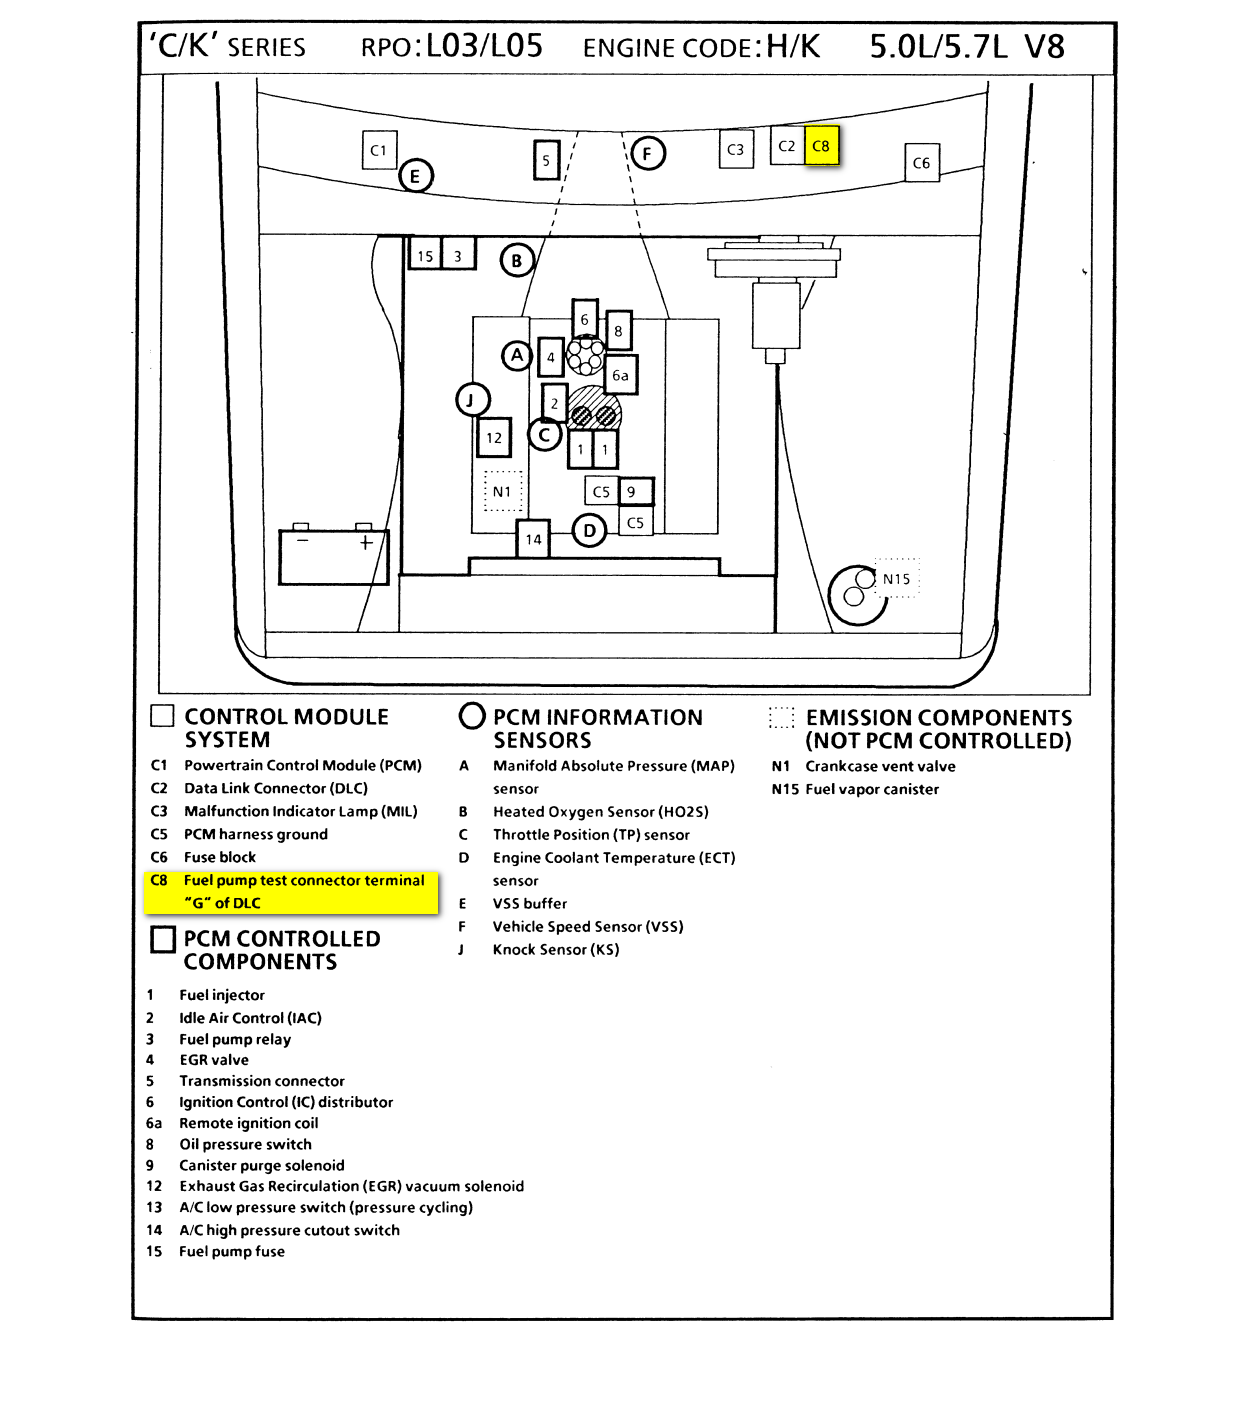 wiring diagram for 87 s10 car wiring diagram download moodswings co Ignition Control Module Wiring Diagram 2009 03 05_005212_2009 03 04_175357 diagram album s10 fuel pump relay more maps, diagram and ignition control module wiring diagram